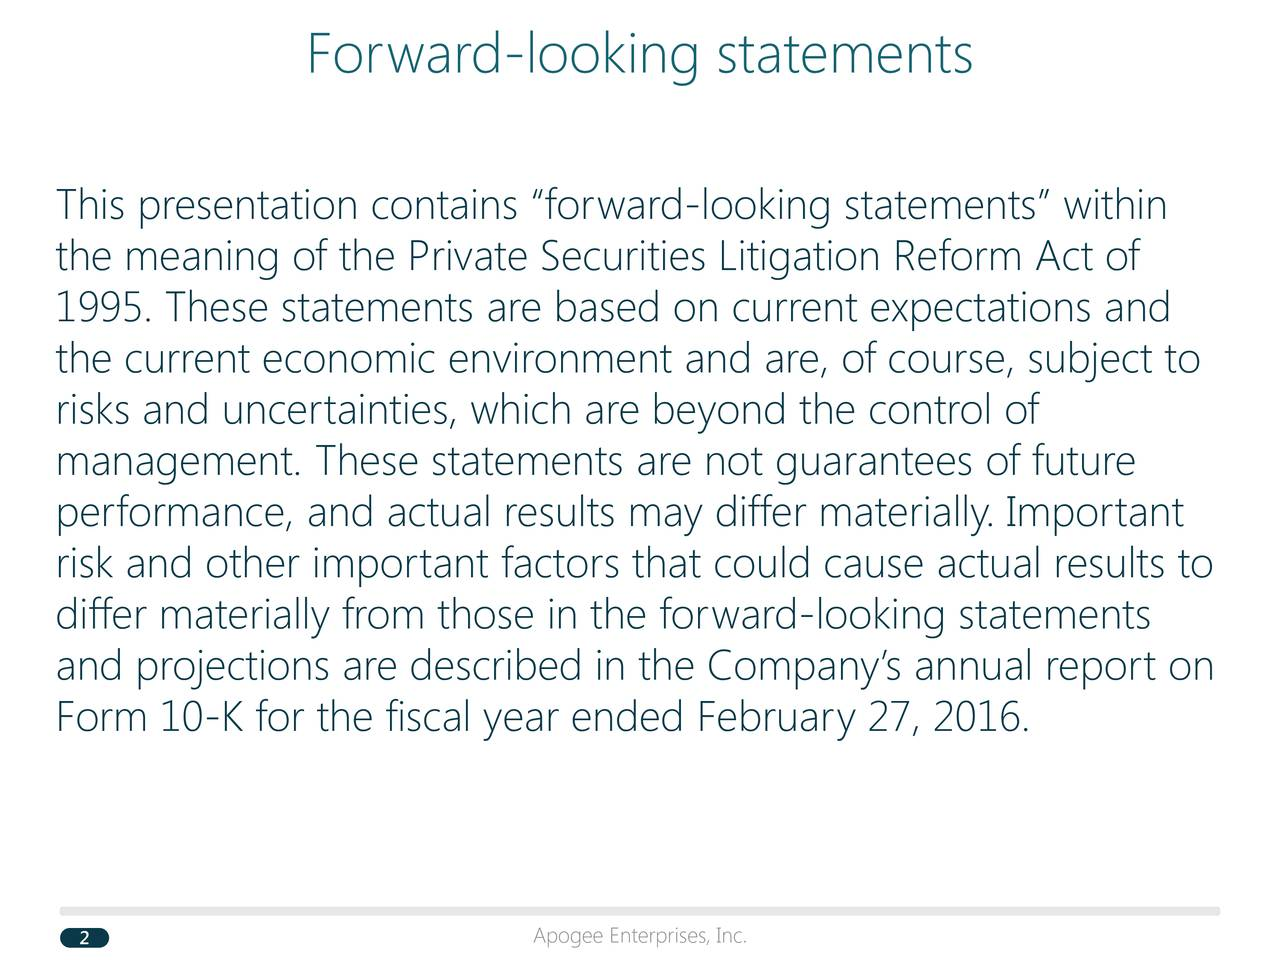 This presentation contains forward-looking statements within the meaning of the Private Securities Litigation Reform Act of 1995. These statements are based on current expectations and the current economic environment and are, of course, subject to risks and uncertainties, which are beyond the control of management. These statements are not guarantees of future performance, and actual results may differ materially. Important risk and other important factors that could cause actual results to differ materially from those in the forward-looking statements and projections are described in the Companys annual report on Form 10-K for the fiscal year ended February 27, 2016.